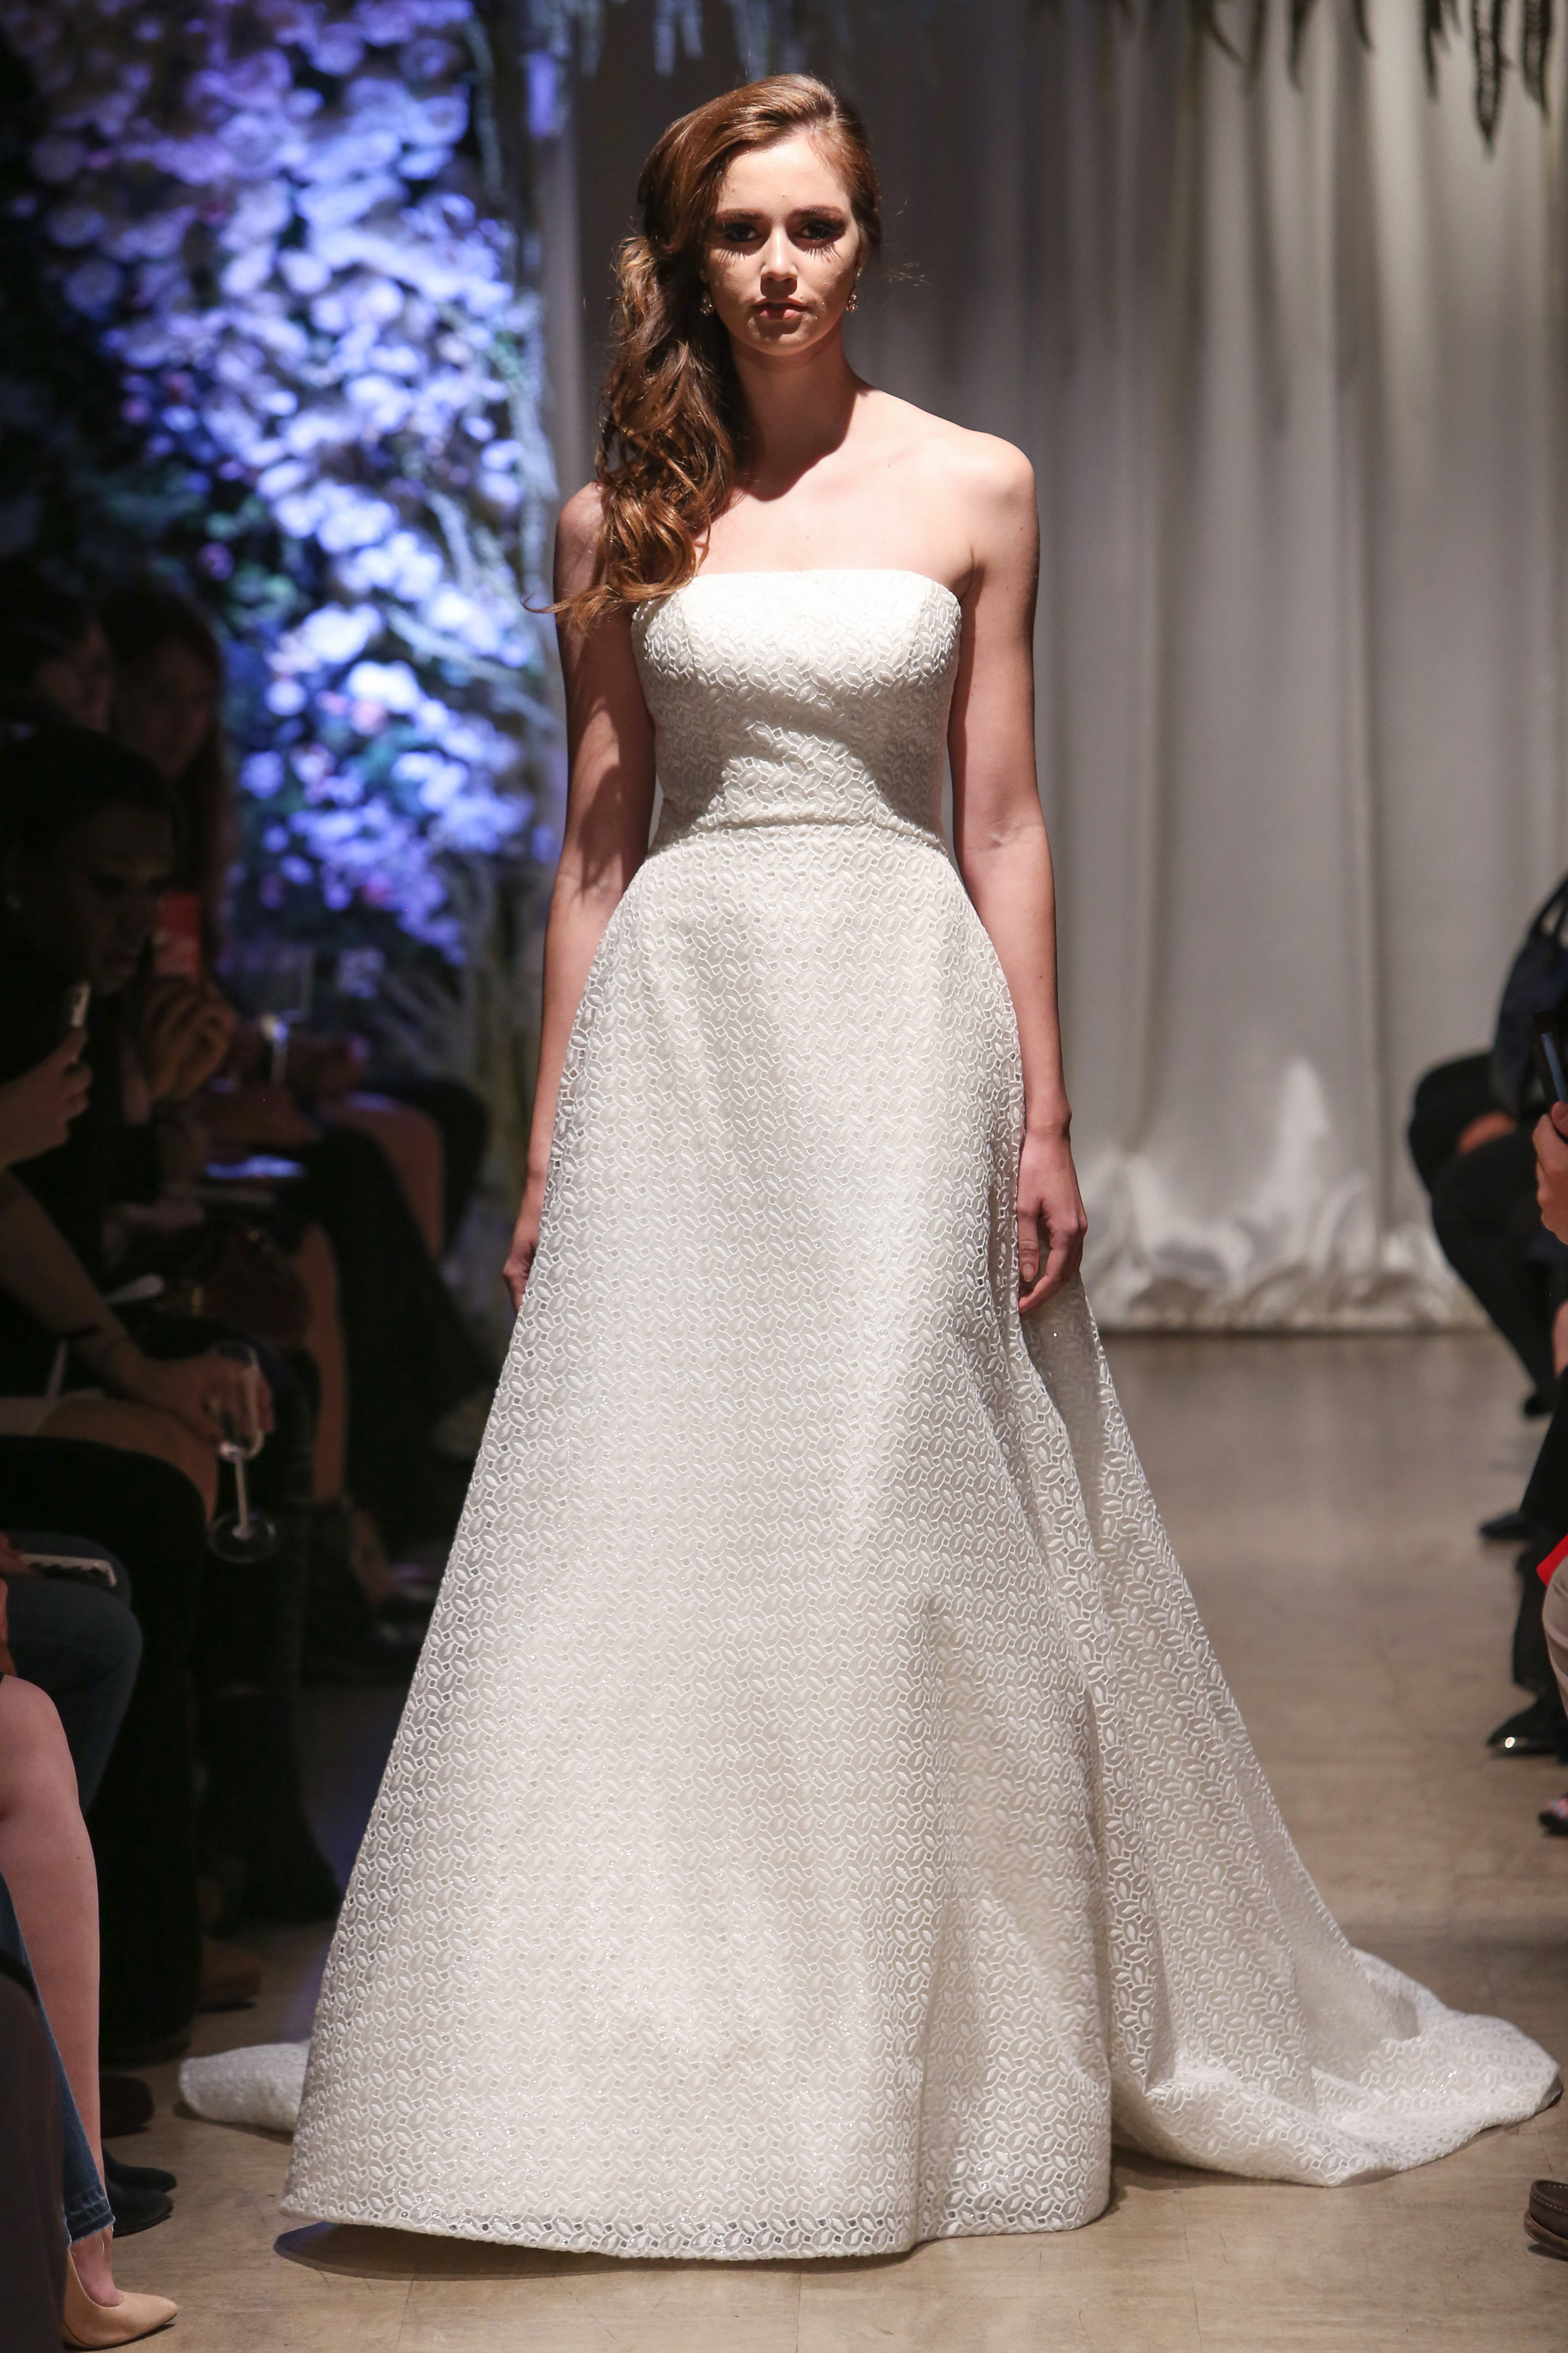 matthew christopher 2018 a-line patterned wedding dress